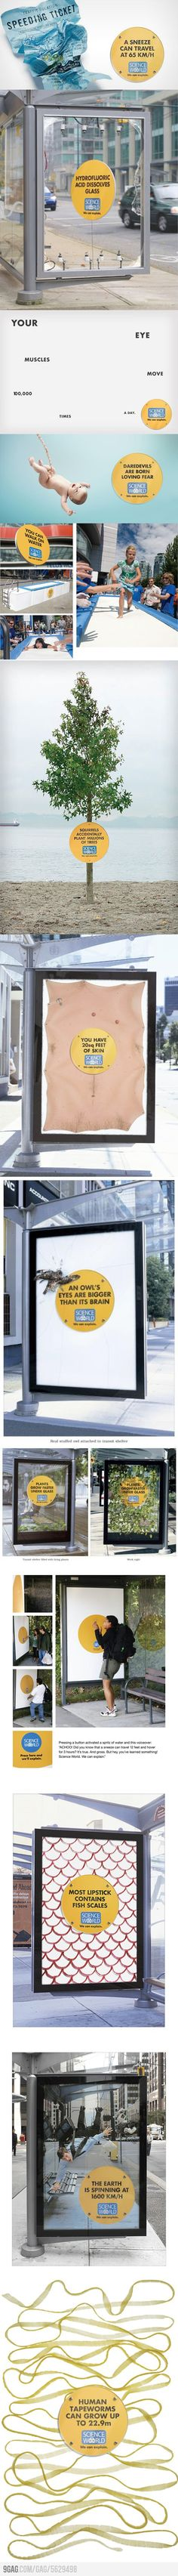 """Clever Ads from """"Science World"""""""